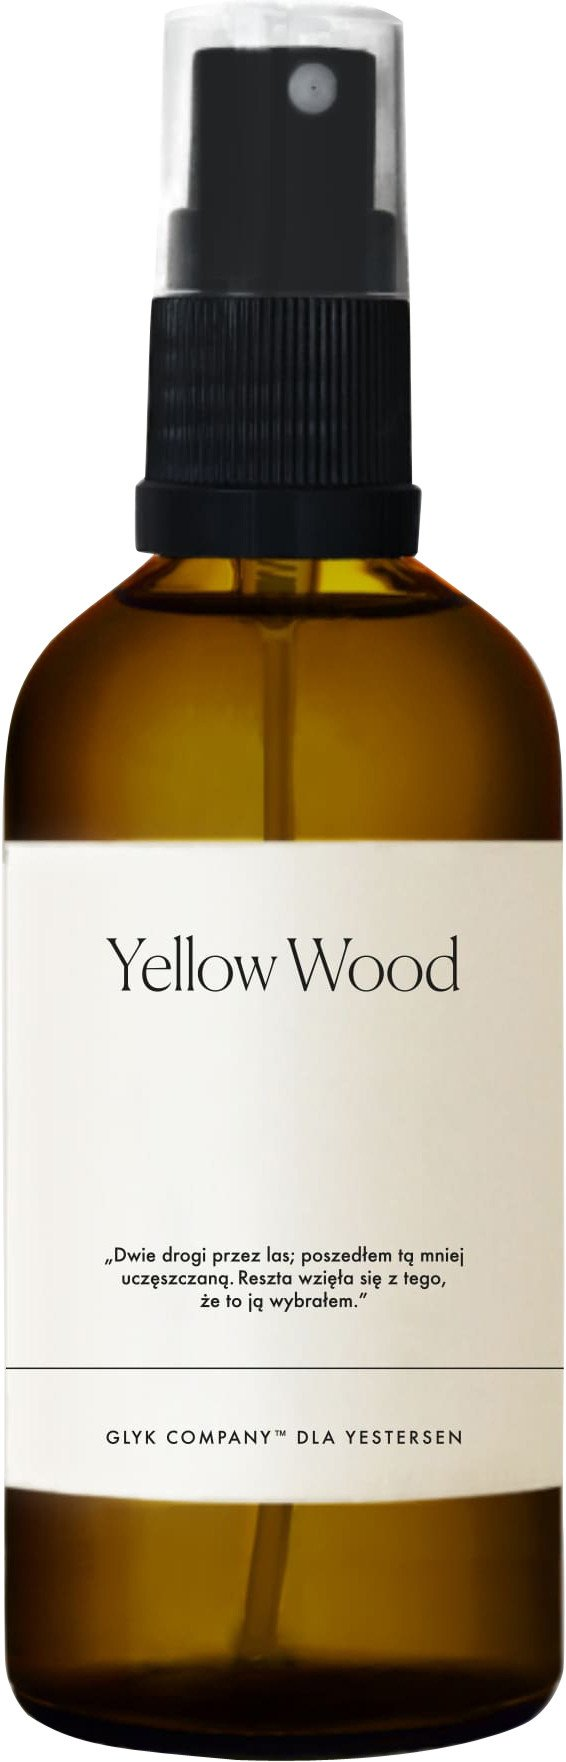 Linen Spray Yellow Wood, yestersen